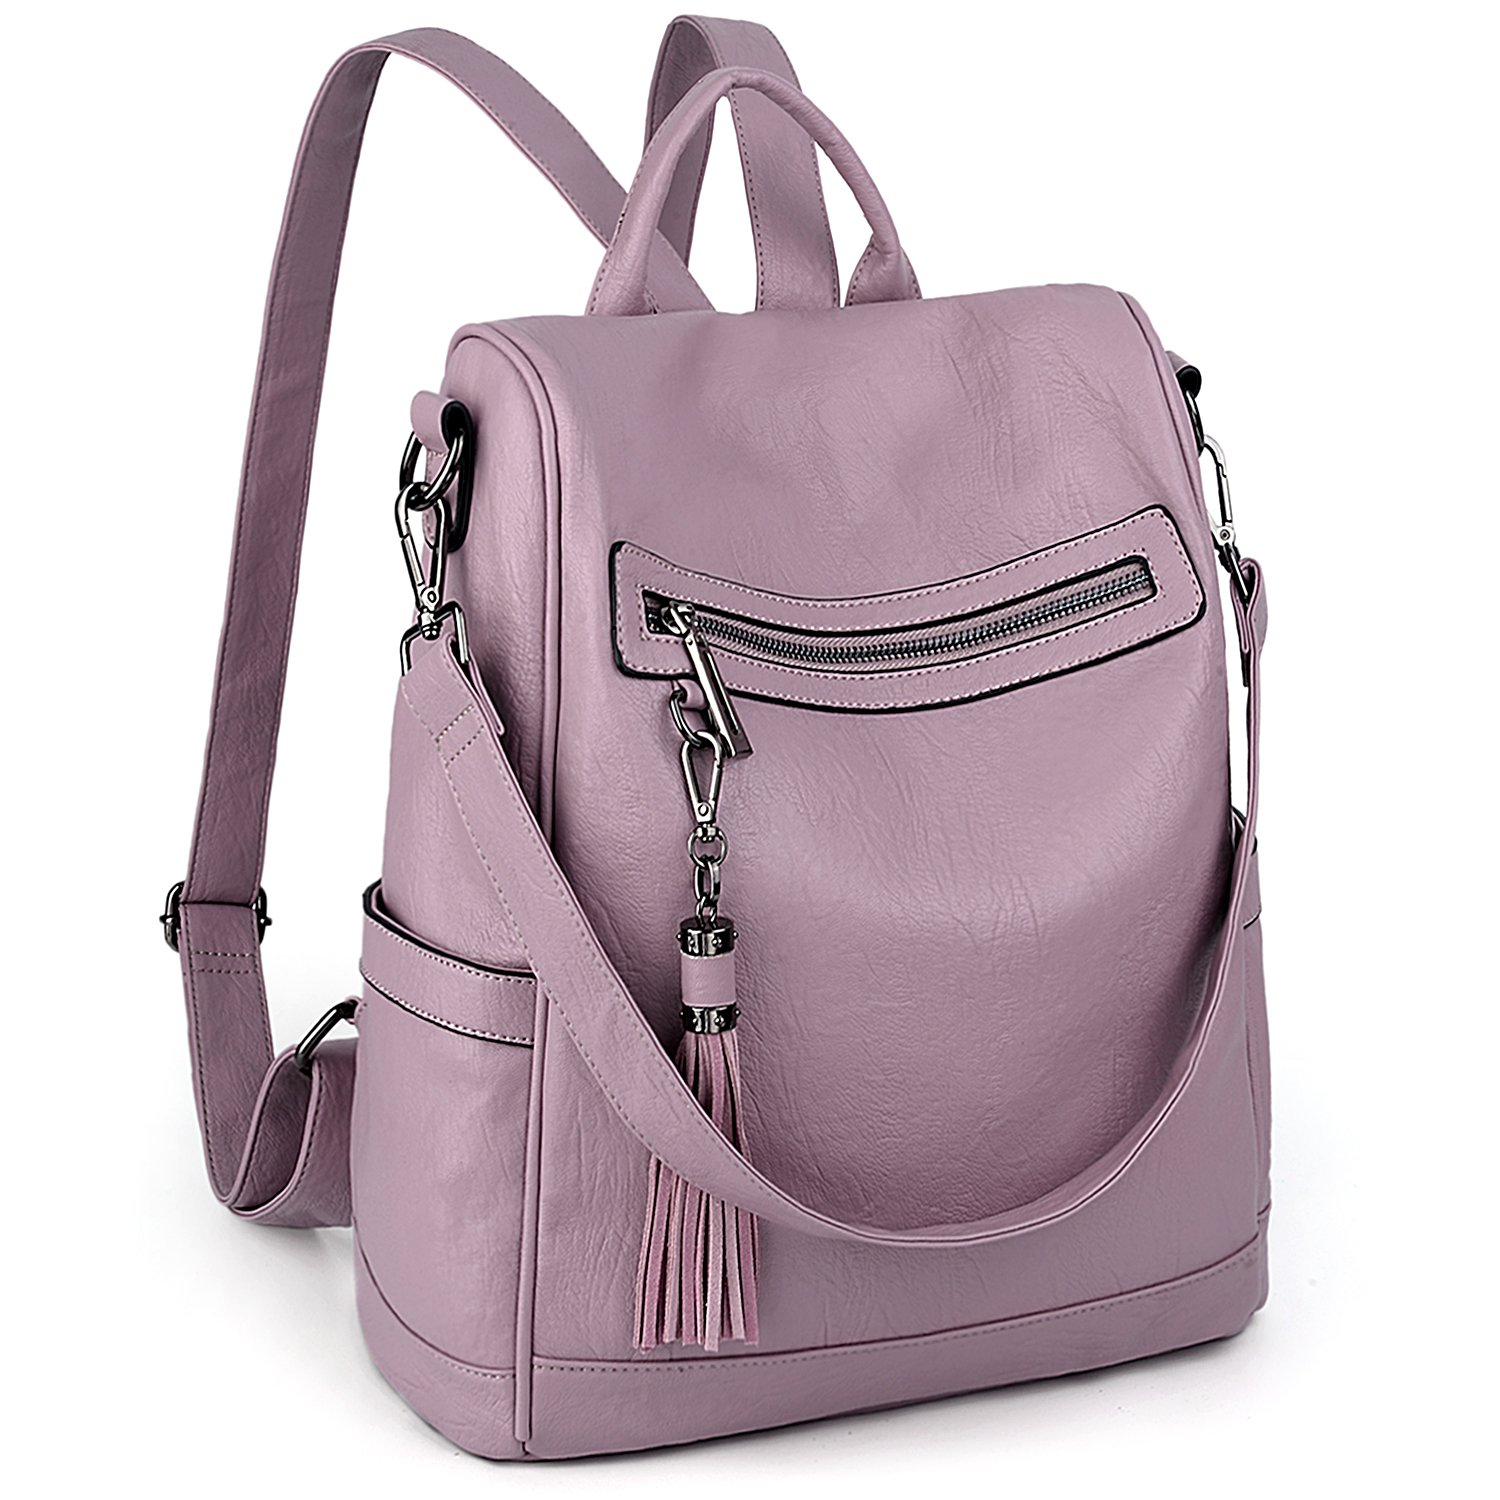 UTO Women Anti-Theft Backpack Purse PU Washed Leather Ladies Tassels Convertible Rucksack Shoulder Bag Lavender by UTO